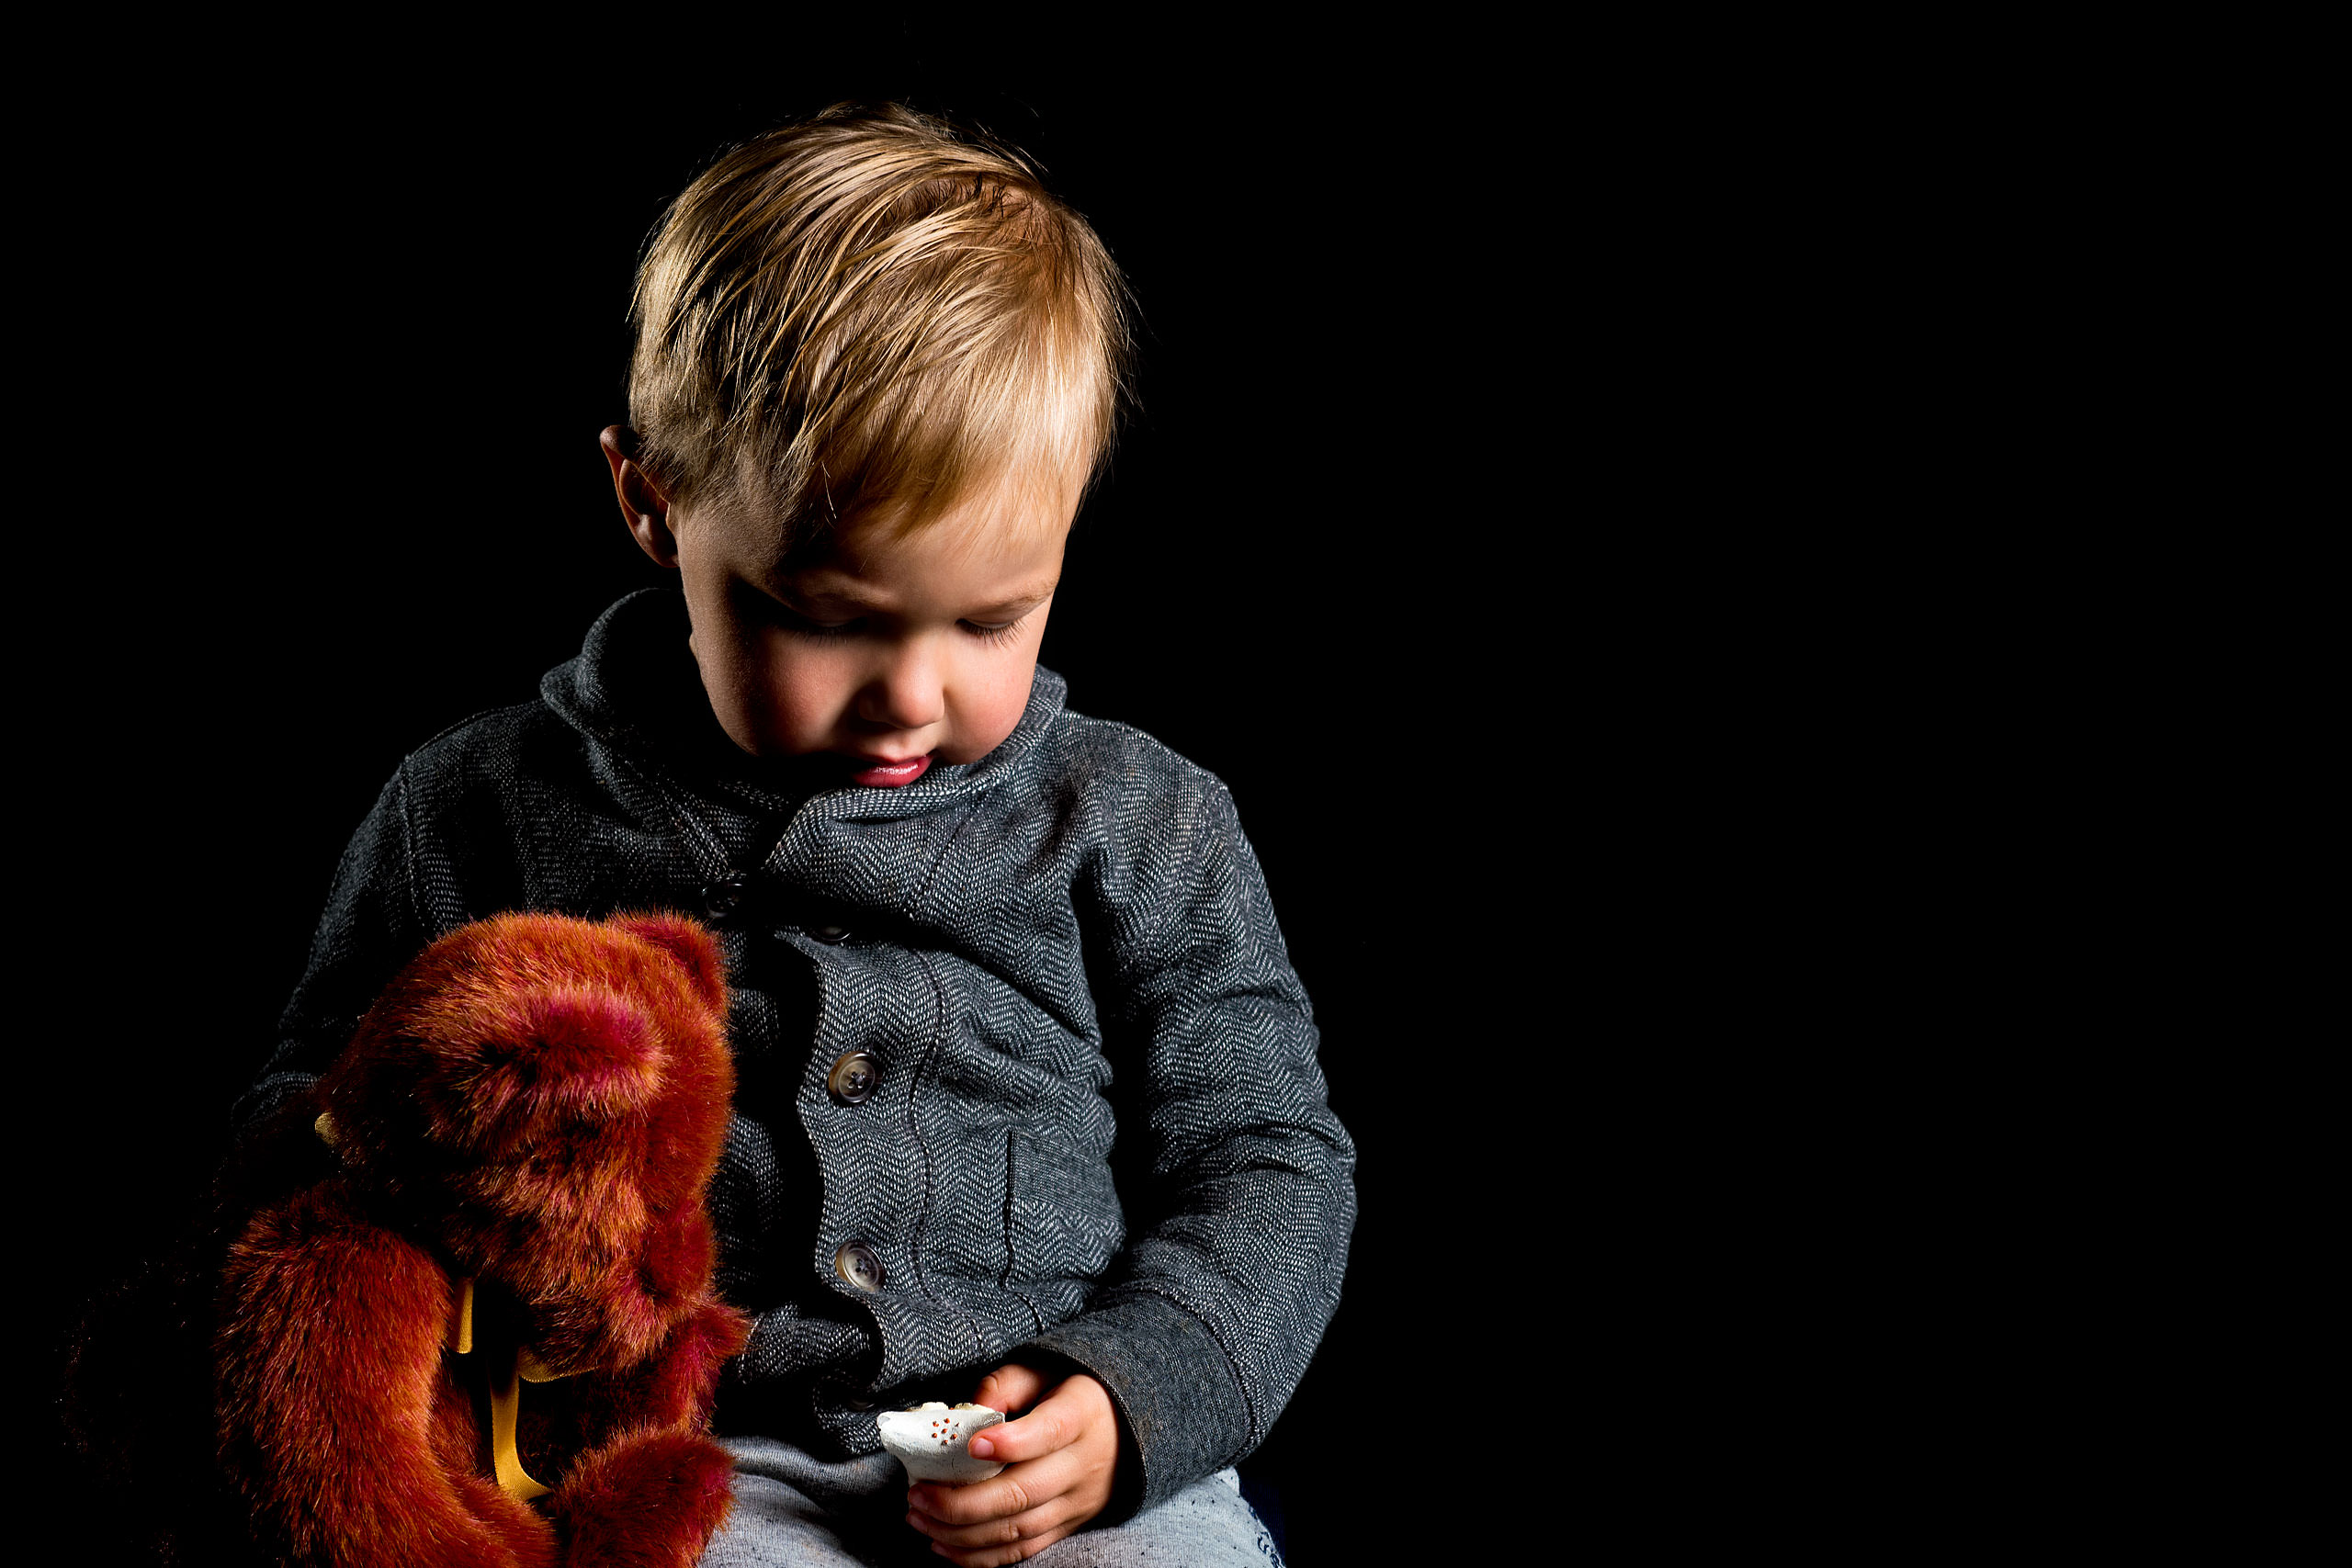 a young boy holding a brown teddy bear looking at a toy for a calgary portrait studio session by sean leblanc